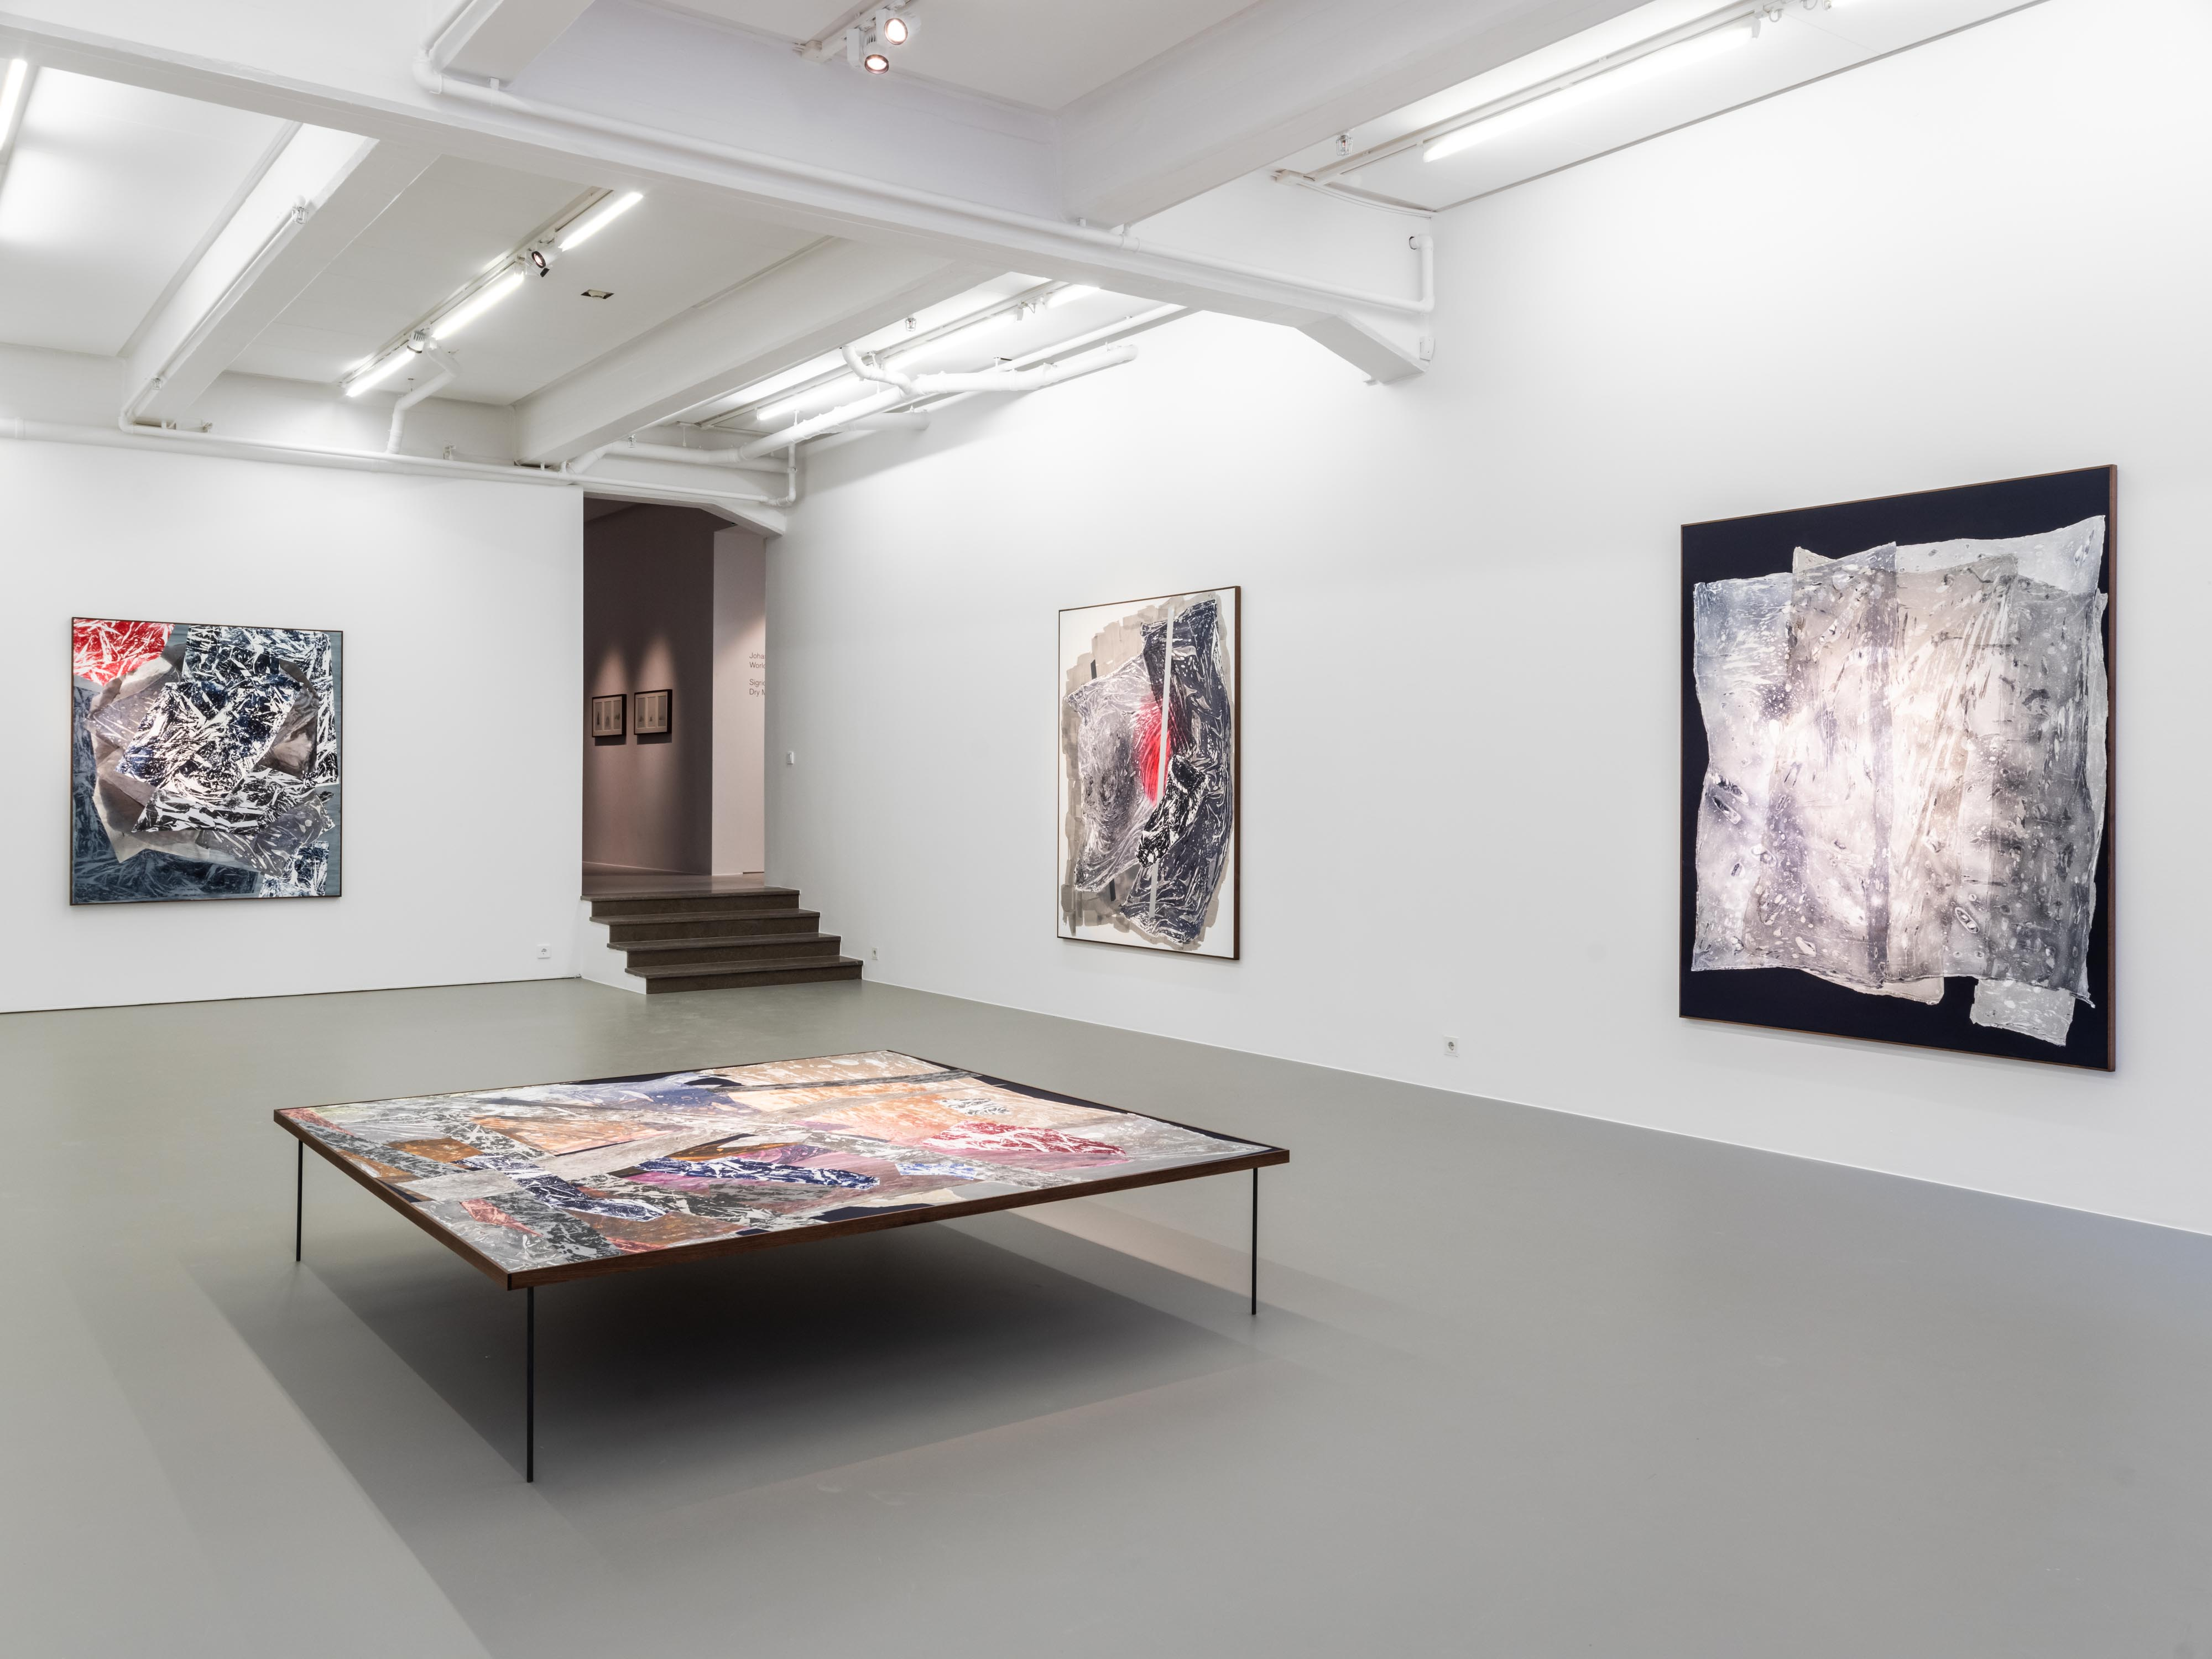 Dry Maars, 2019, installation view. Photo: Jean-Baptiste Béranger